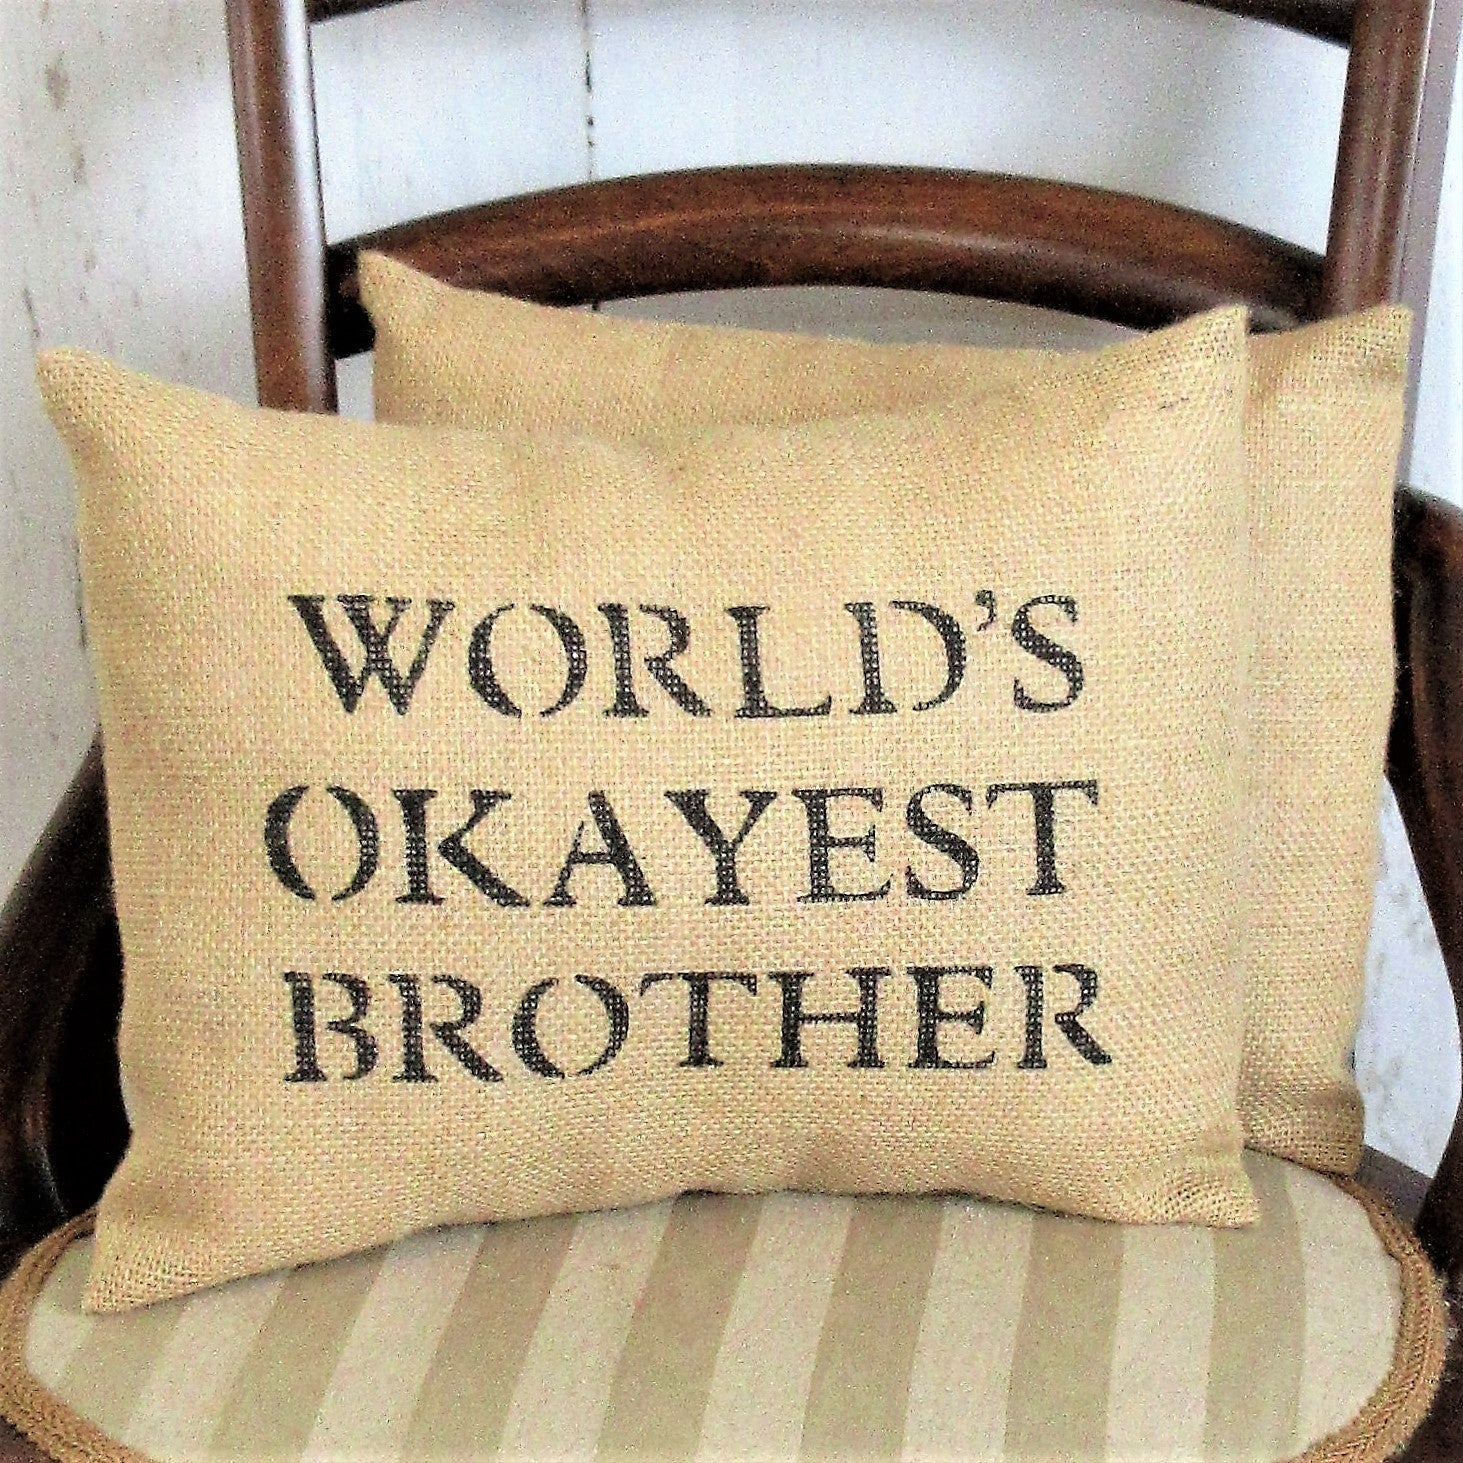 World's Okayest Sister, World's Okayest Brother Burlap pillow